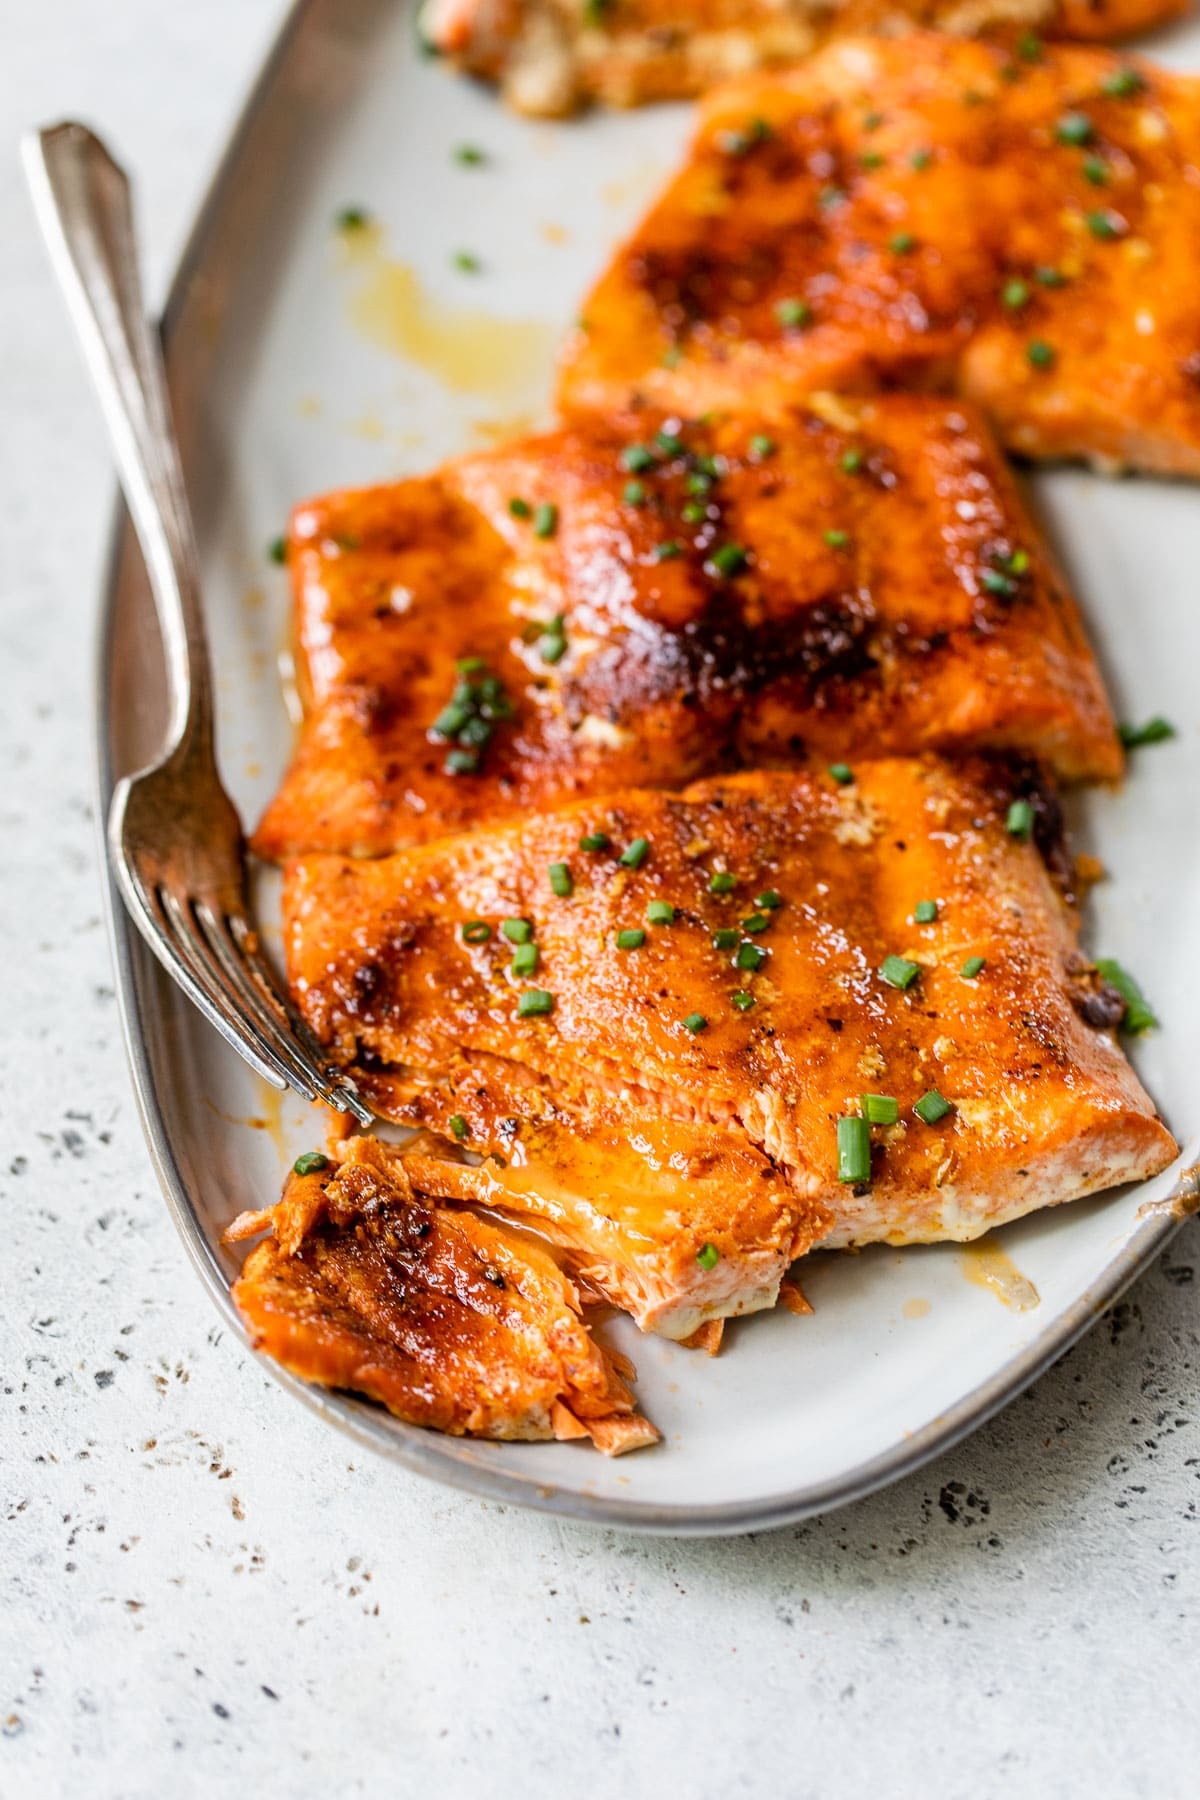 baked salmon with a bite taken out of it